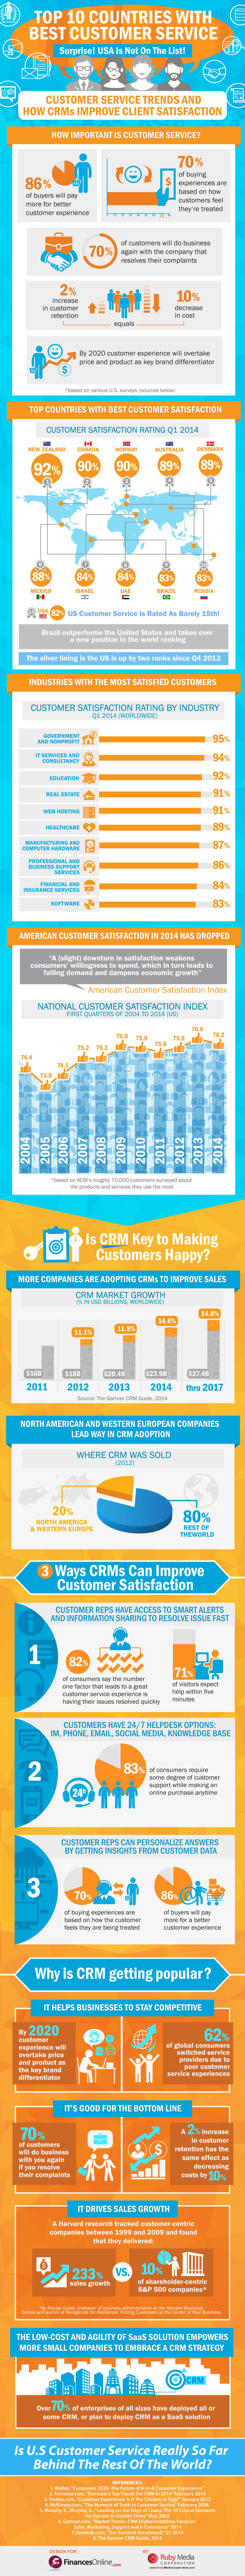 Countries With Best Customer Service: Current Trends & How CRMs Improve Client Satisfaction